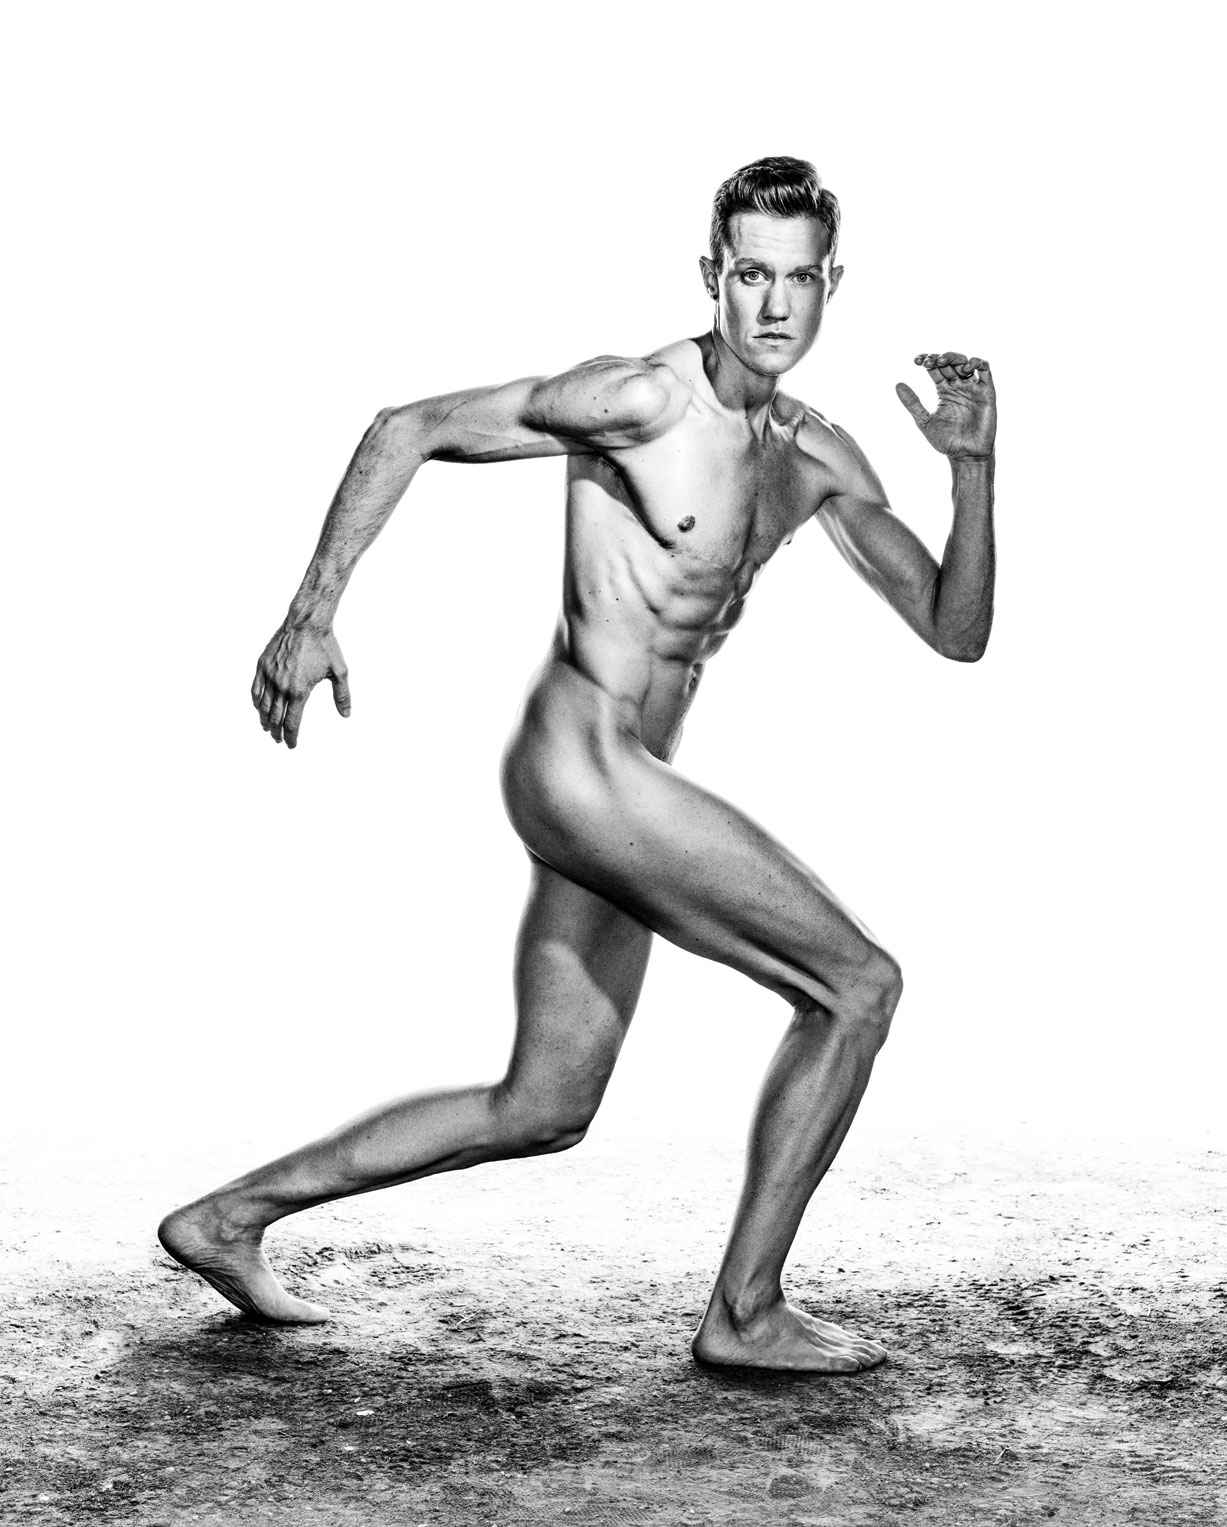 ESPN Magazine The Body Issue 2016 - Chris Mosier / Крис Мосье - Культ тела журнала ESPN